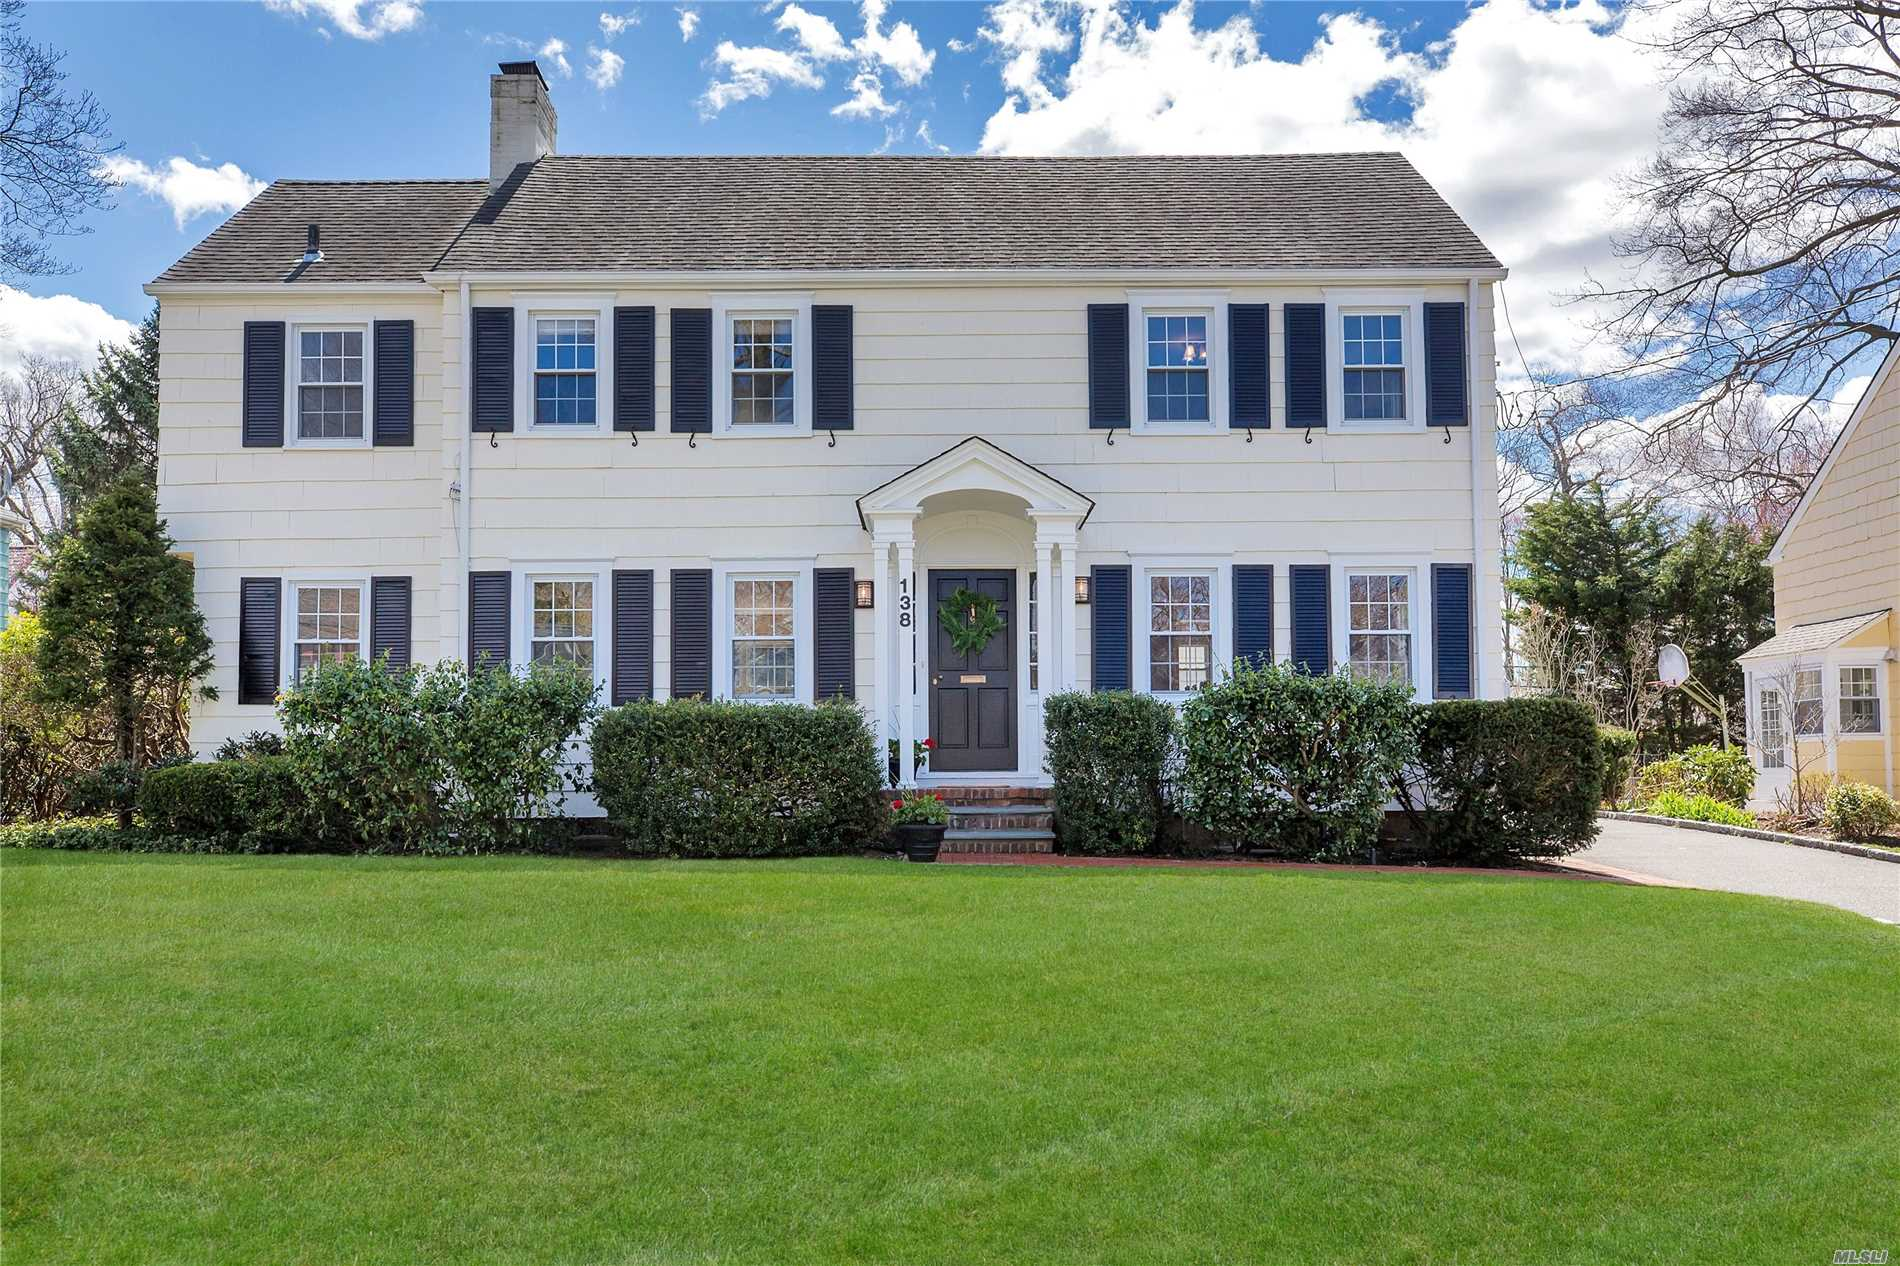 Classic Center Entry Colonial, Gourmet Kitchen, Elegant Living Room w/Fireplace, Formal Dining Room, Sunny Den With French Doors That Open To a Lovely Yard with patio, professionally landscaped property, Detached Garage, CAC, Wood Floors, Many Upgrades. Must See This Beautiful Home.